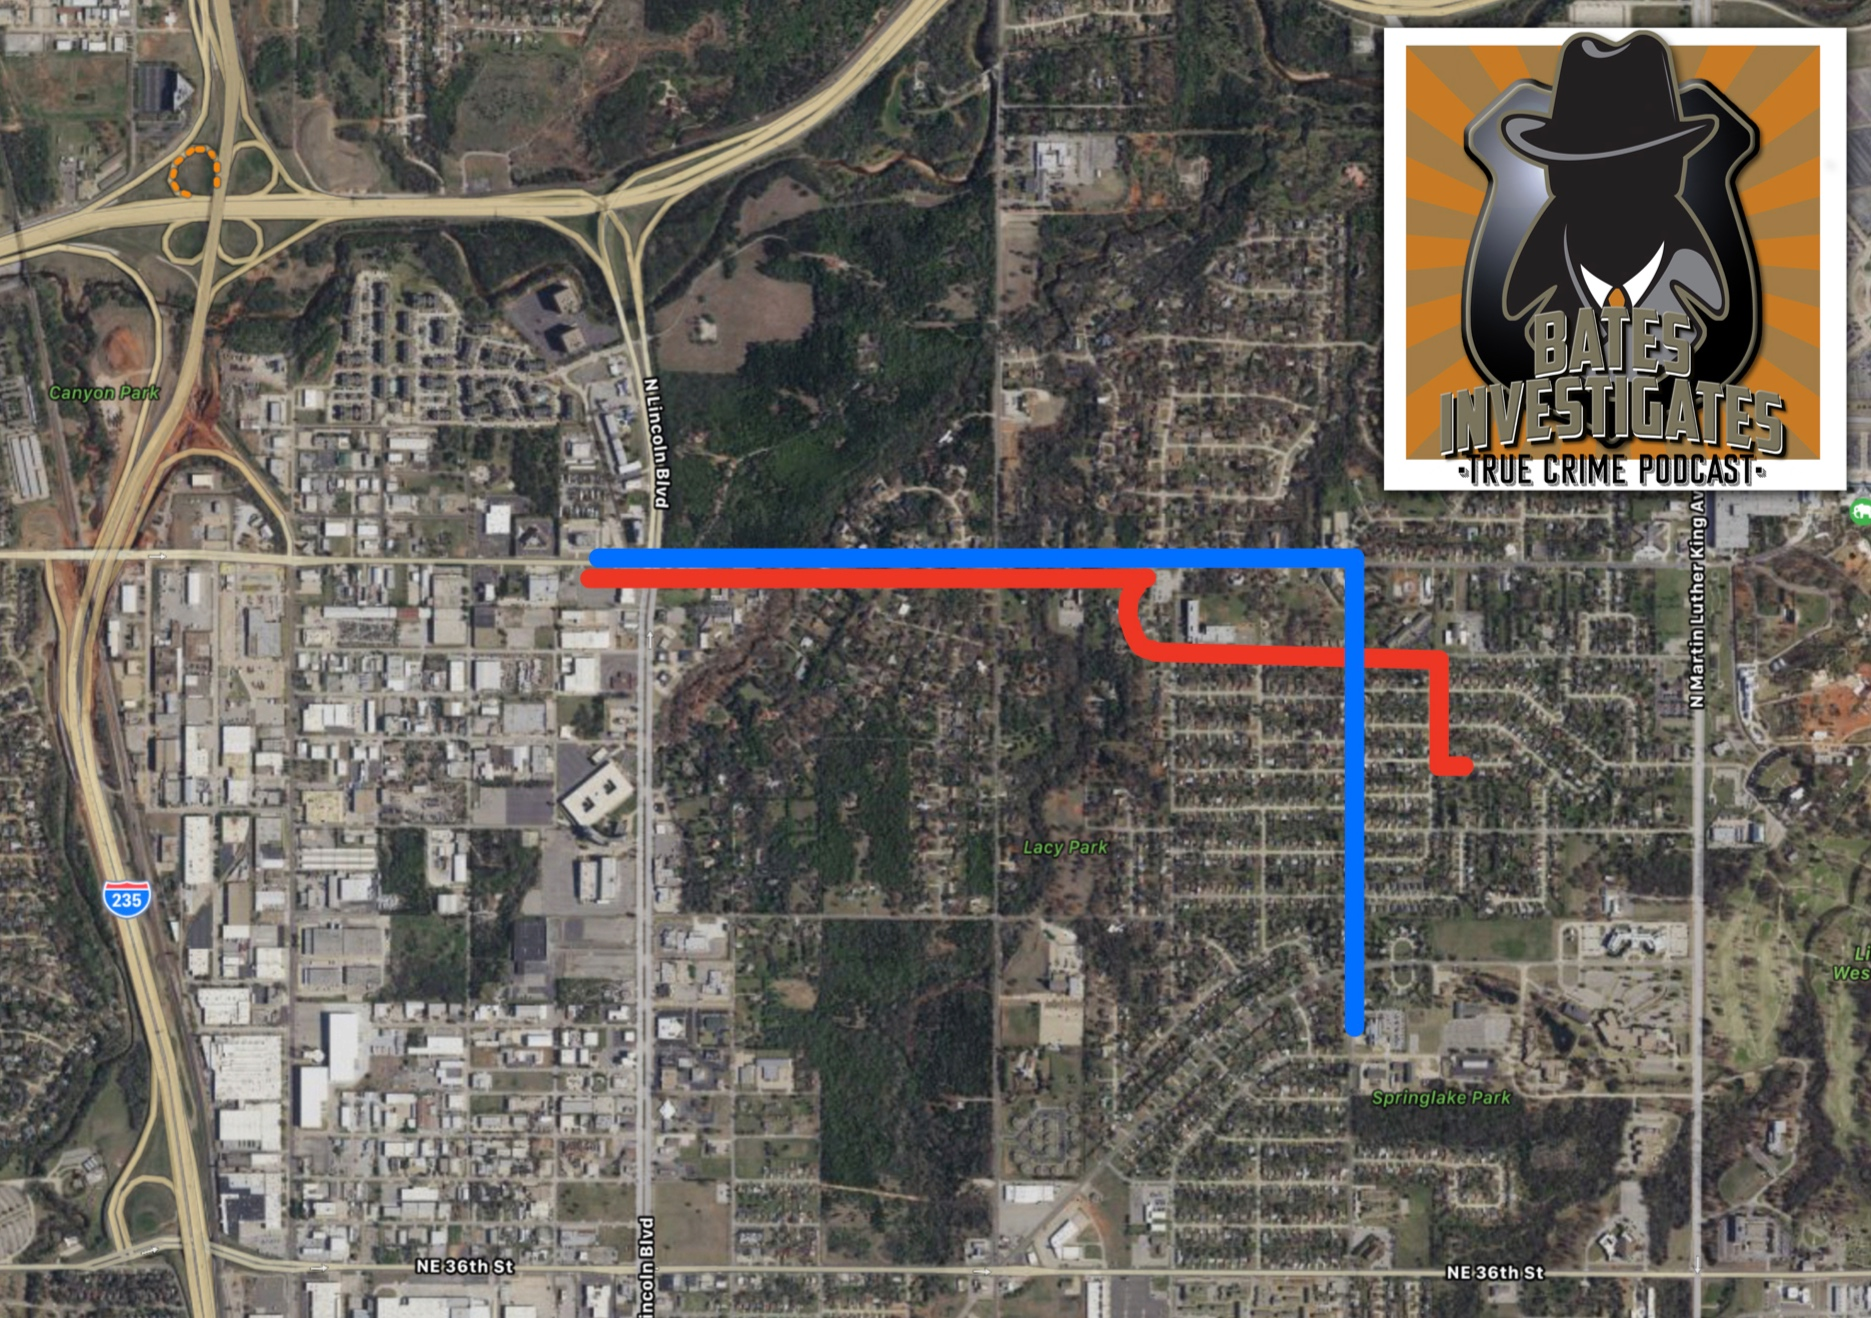 Overview Google Map of the route officer Holtzclaw and Ligons took prior to the stop. [Holtzclaw/Blue, Ligons/Red]